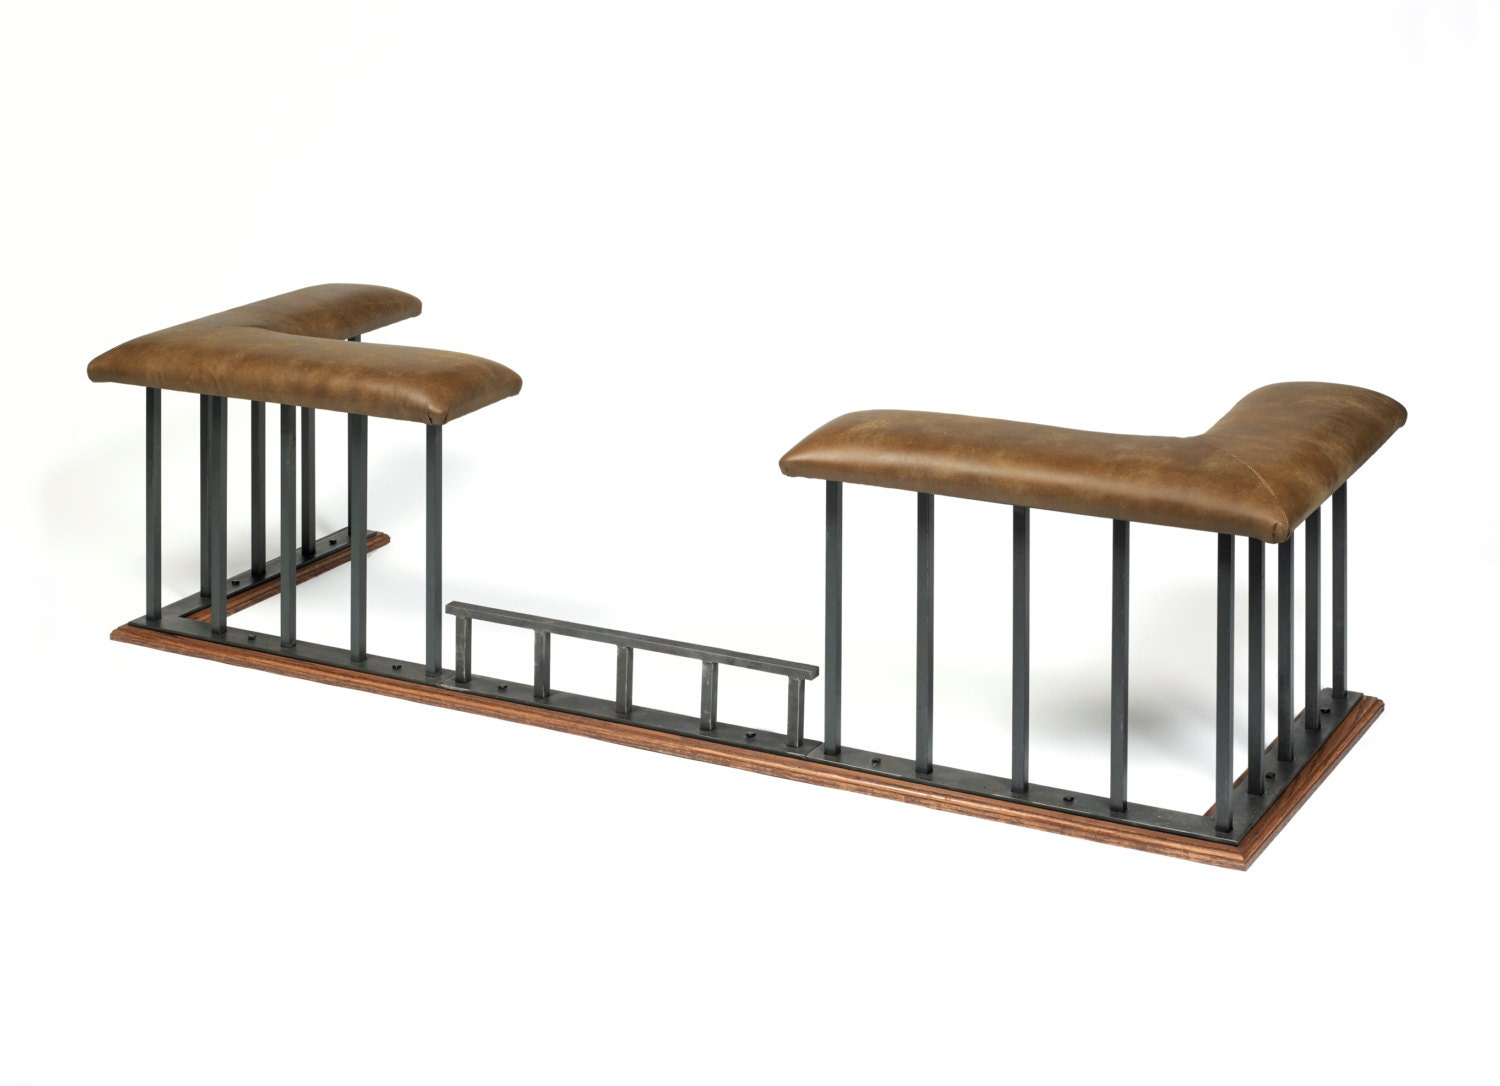 ancien banc de chemin e anglais made in usa taille etsy. Black Bedroom Furniture Sets. Home Design Ideas